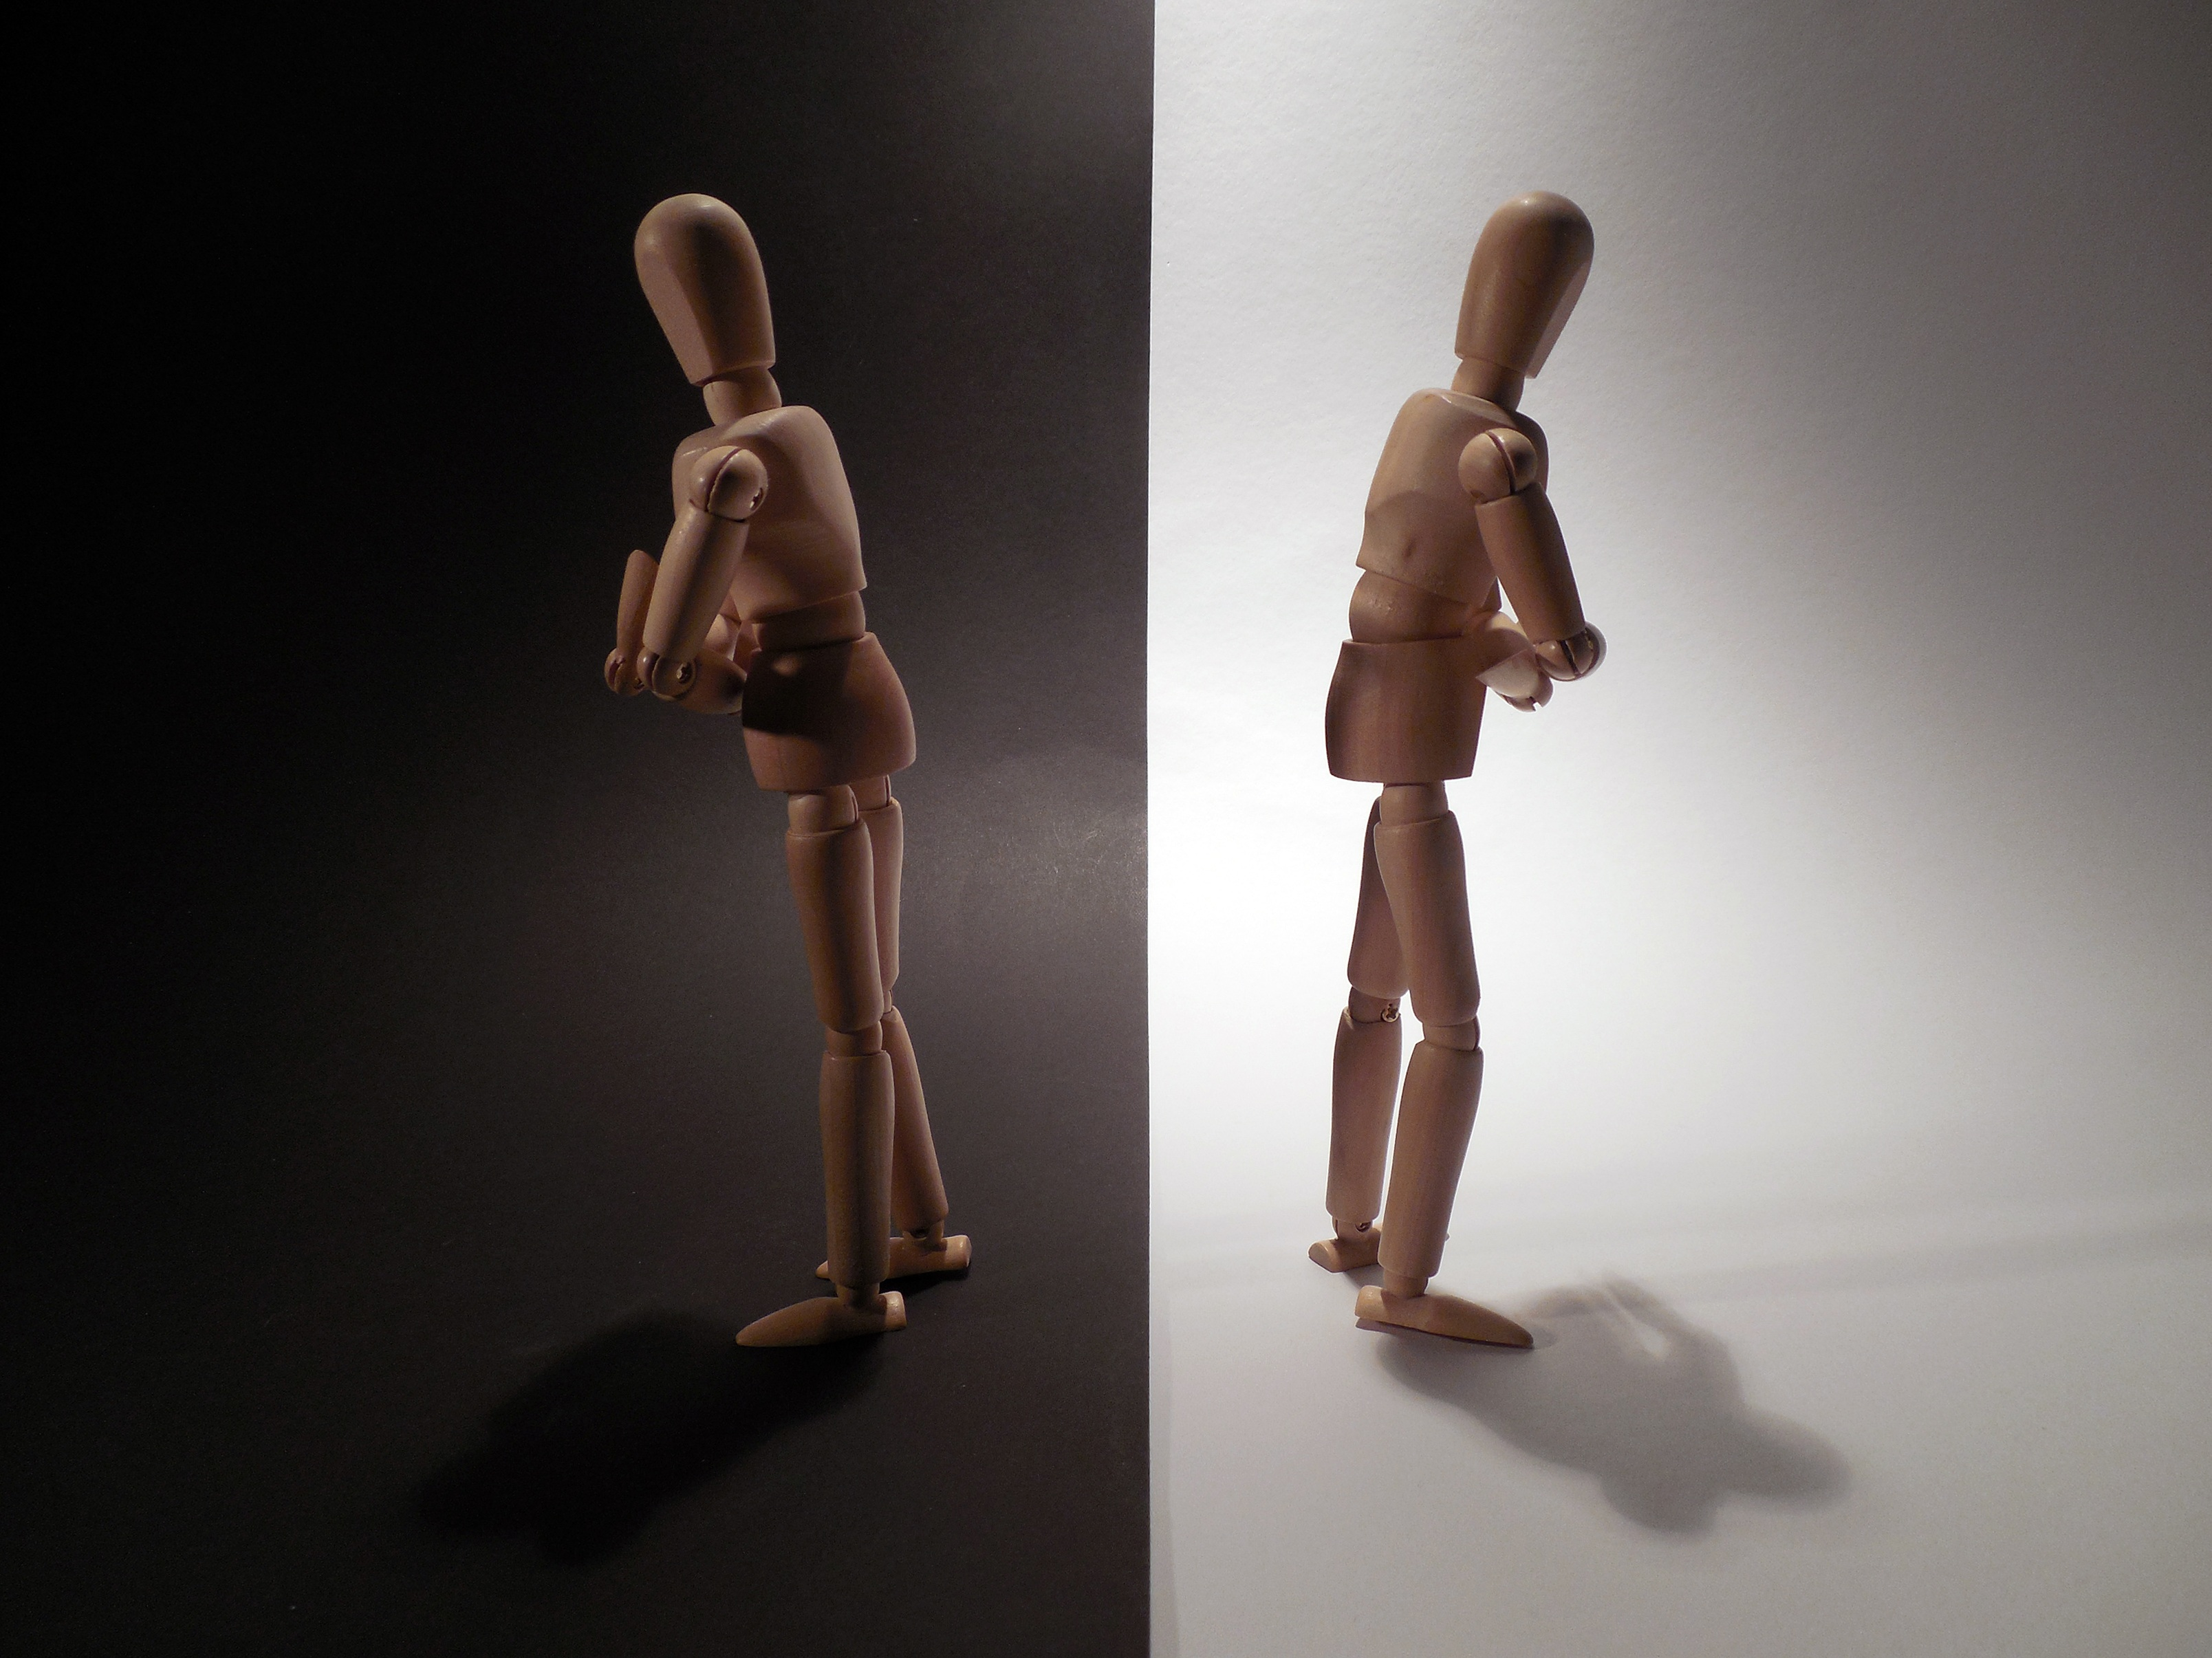 Carved wooden figures of two people with their backs to each other, with the one on the left on a black background facing the left, and the one on the right on a white background facing the right.